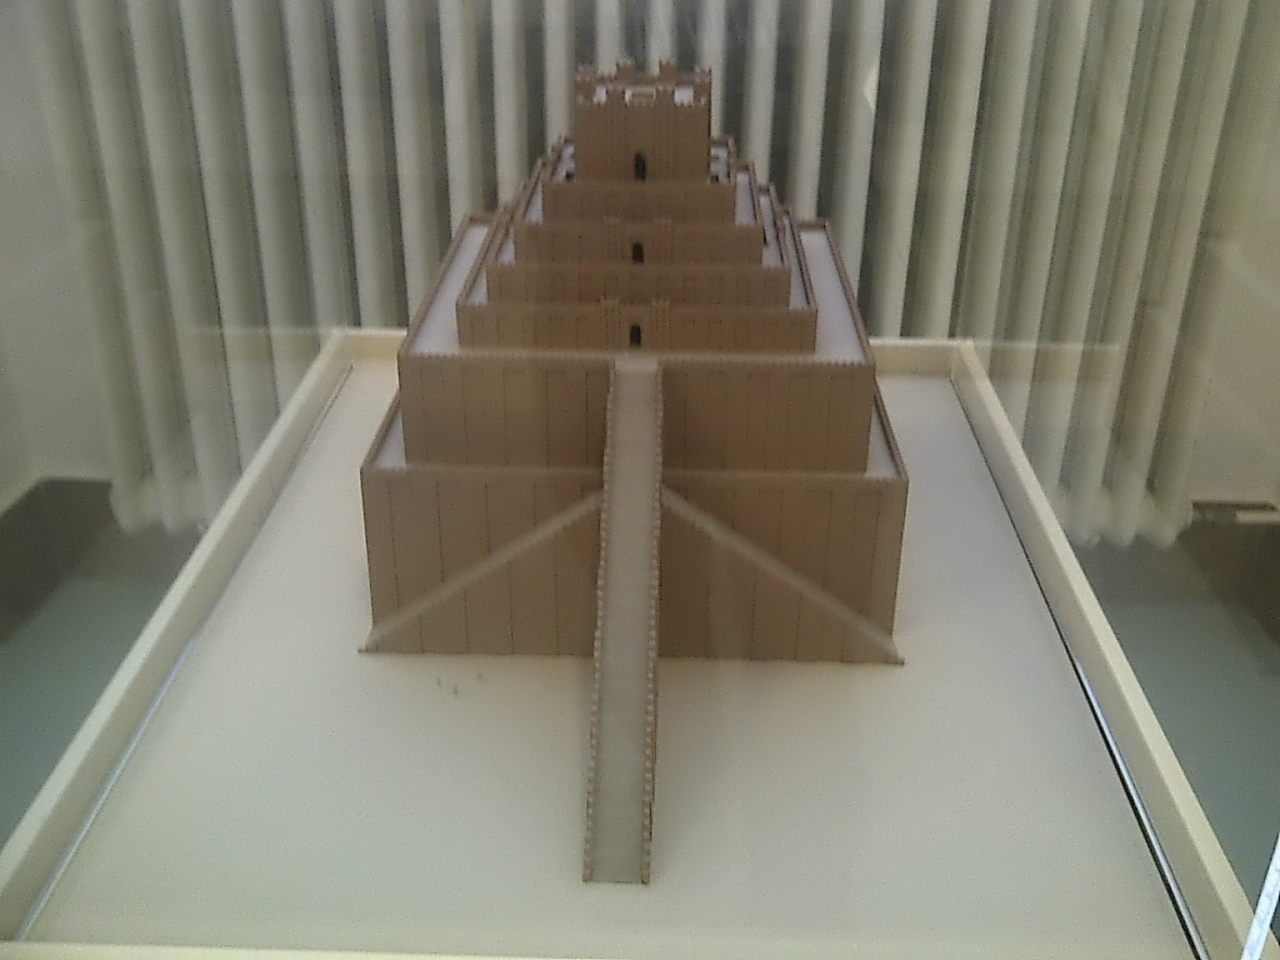 Pergamon Museum, Ziggurat of Uruk model